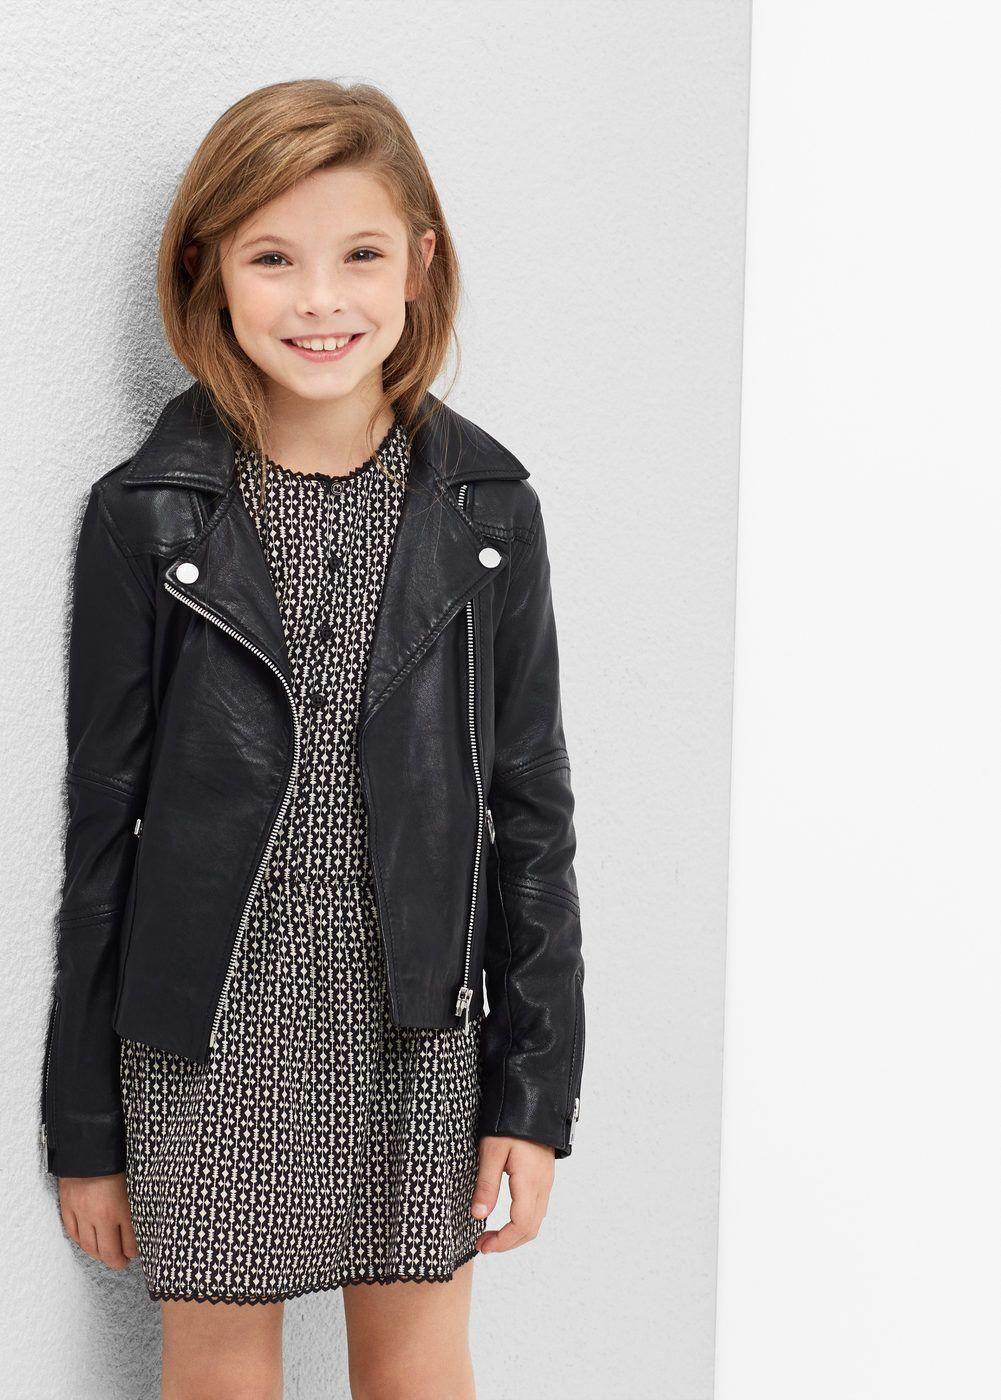 Zip leather jacket Kids MANGO Little girl haircuts